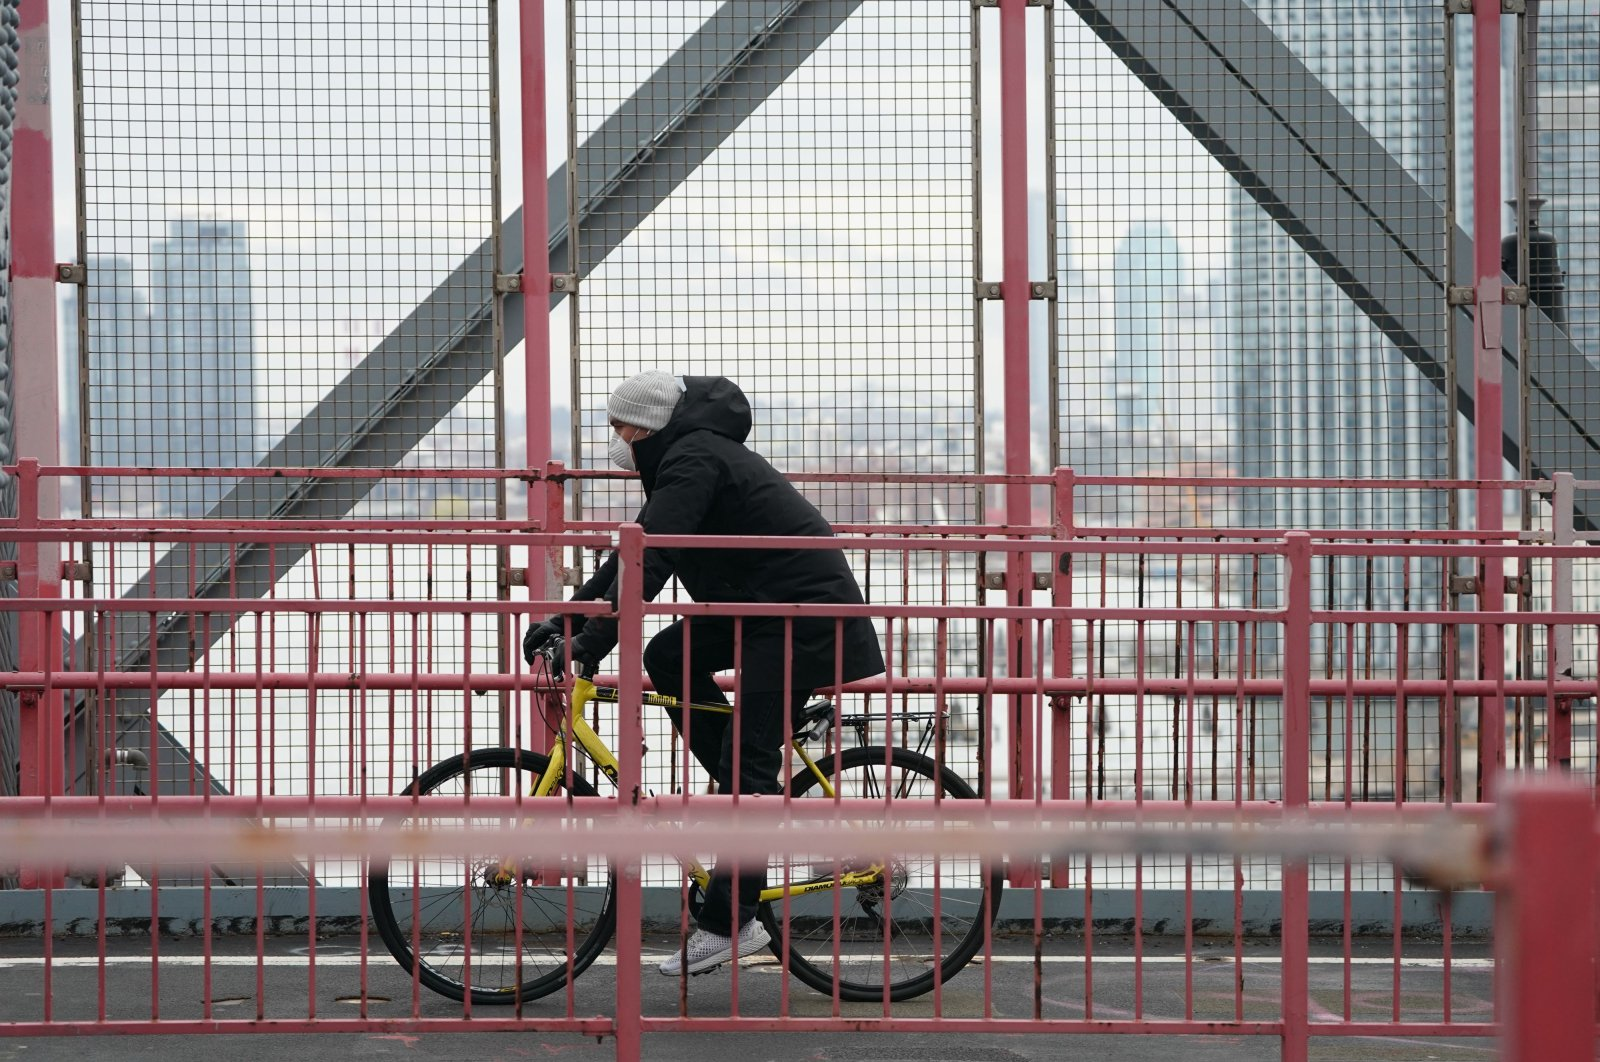 A cyclist wearing a mask rides over the Williamsburg Bridge in the Borough of Brooklyn on March 25, 2020 in New York. (AFP Photo)